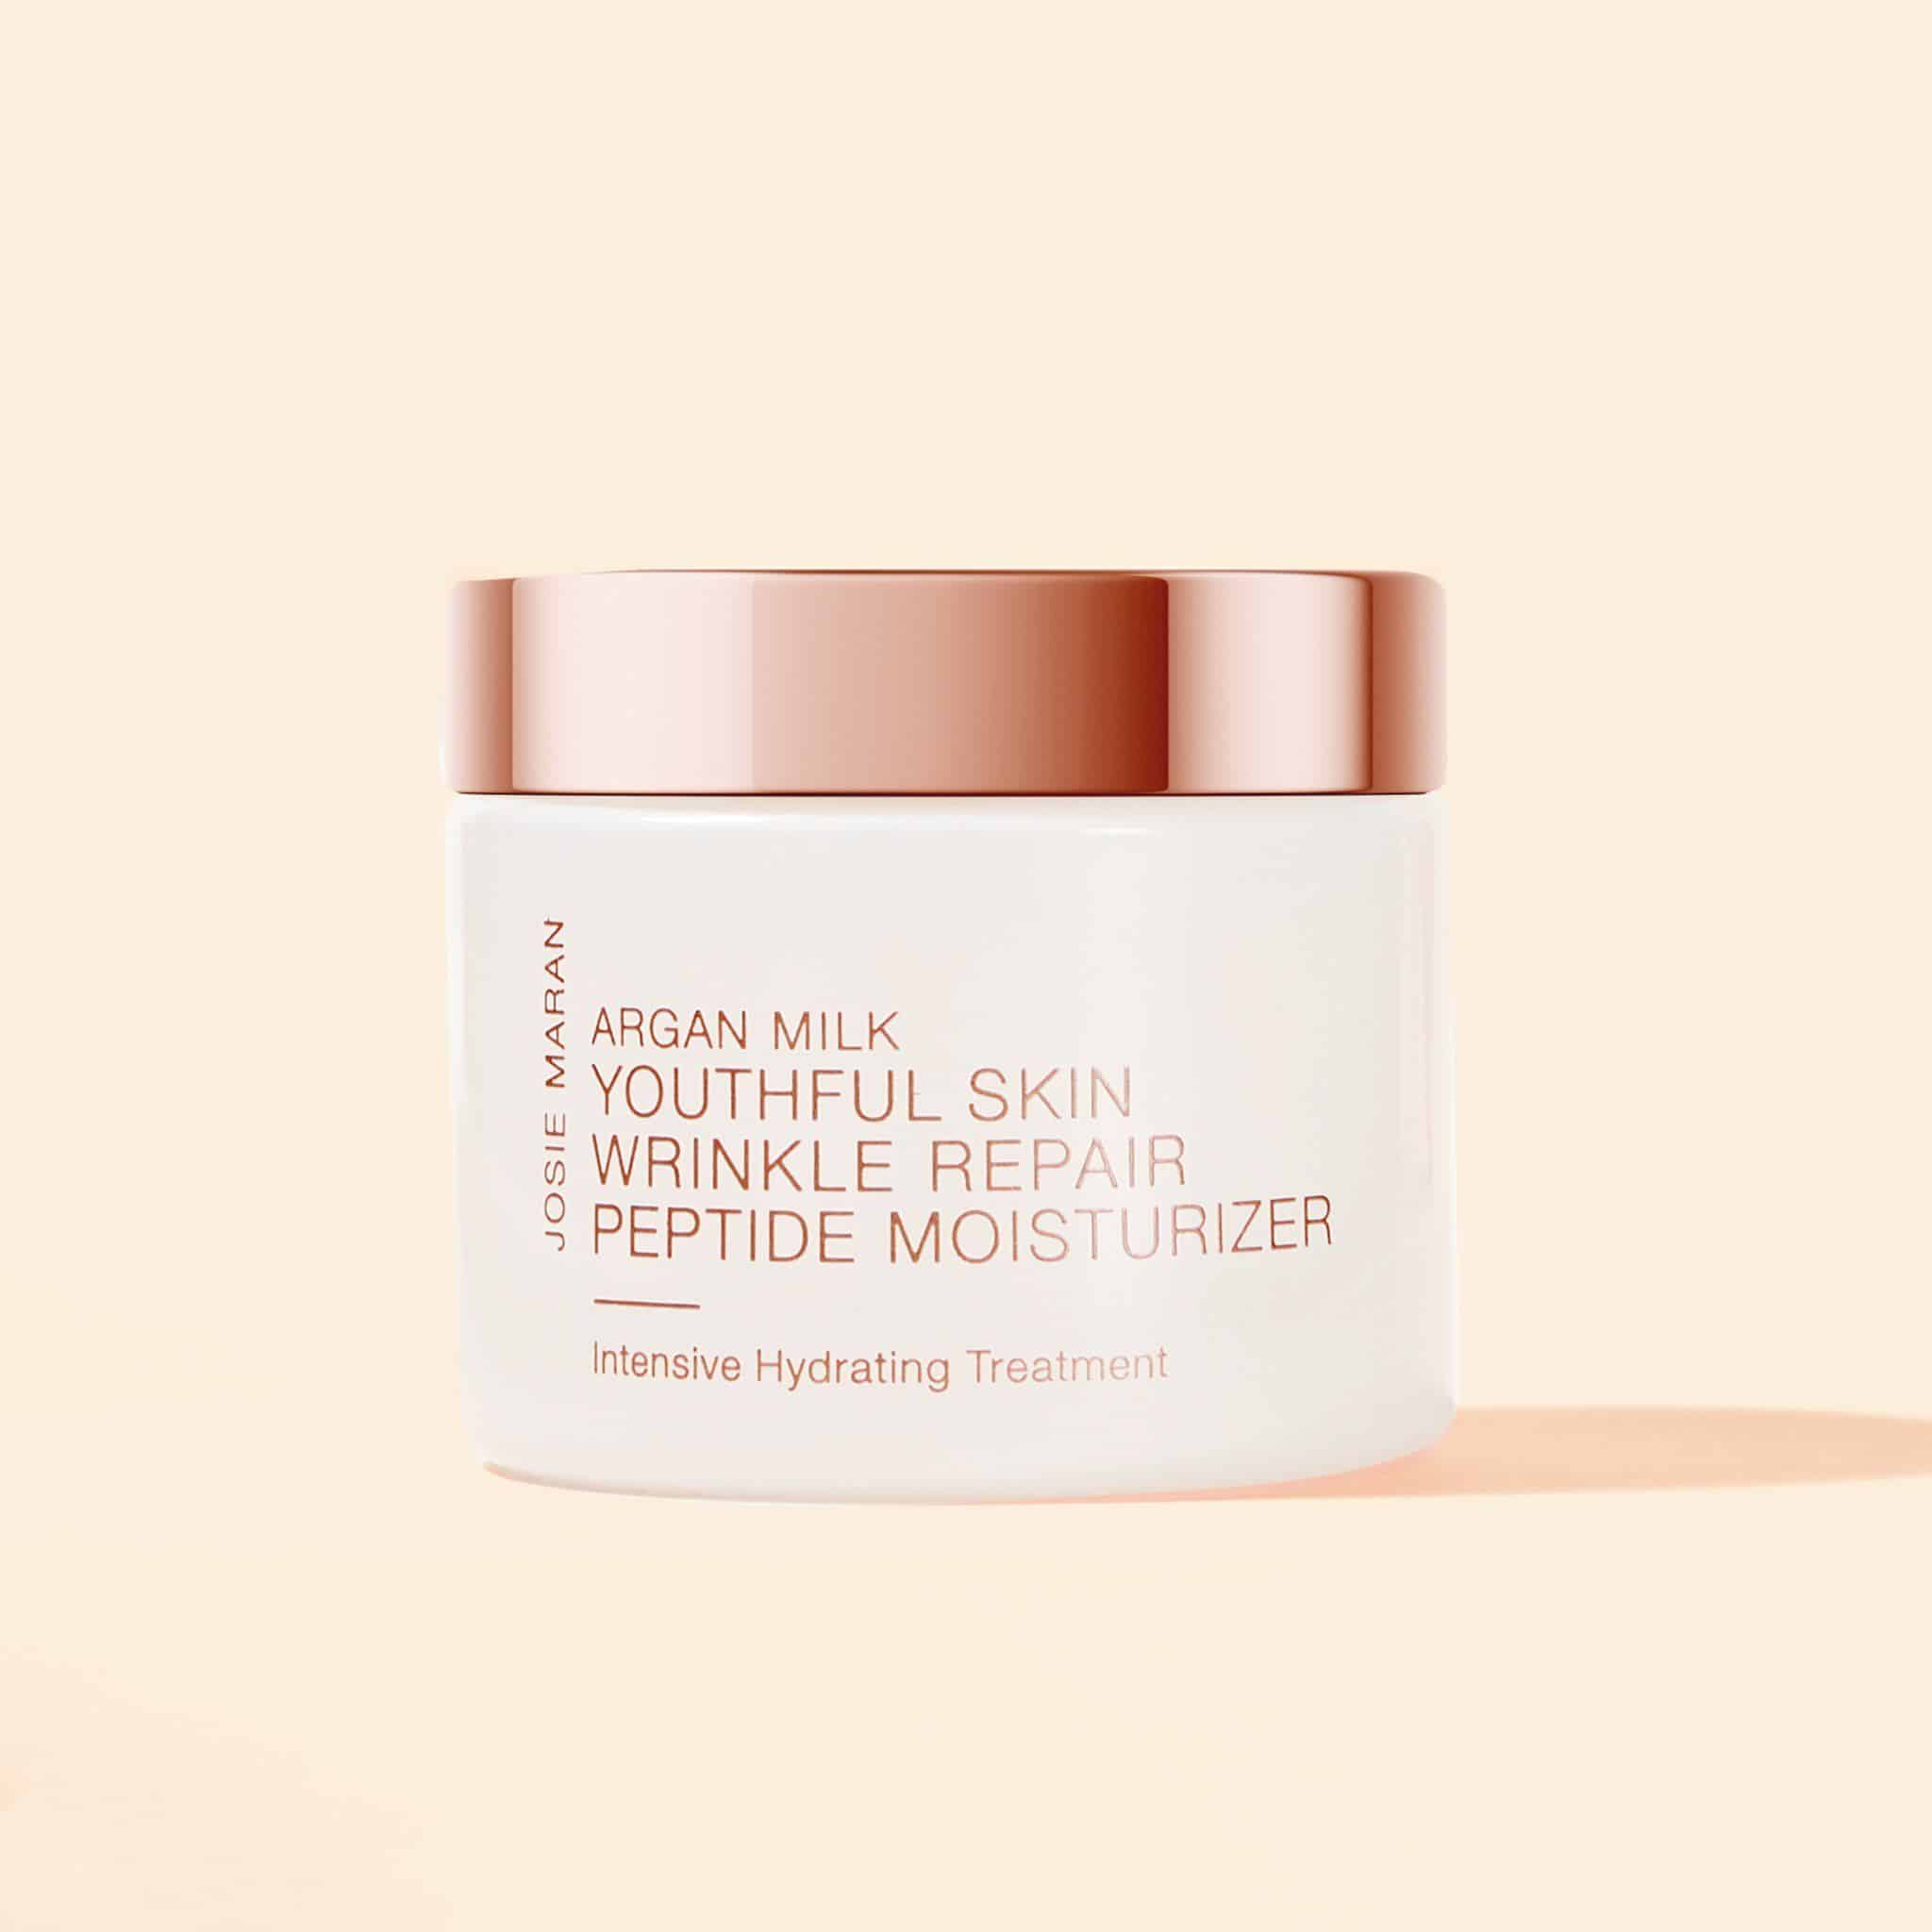 Josie Maran Youthful Skin Wrinkle Repair Peptide Moisturizer